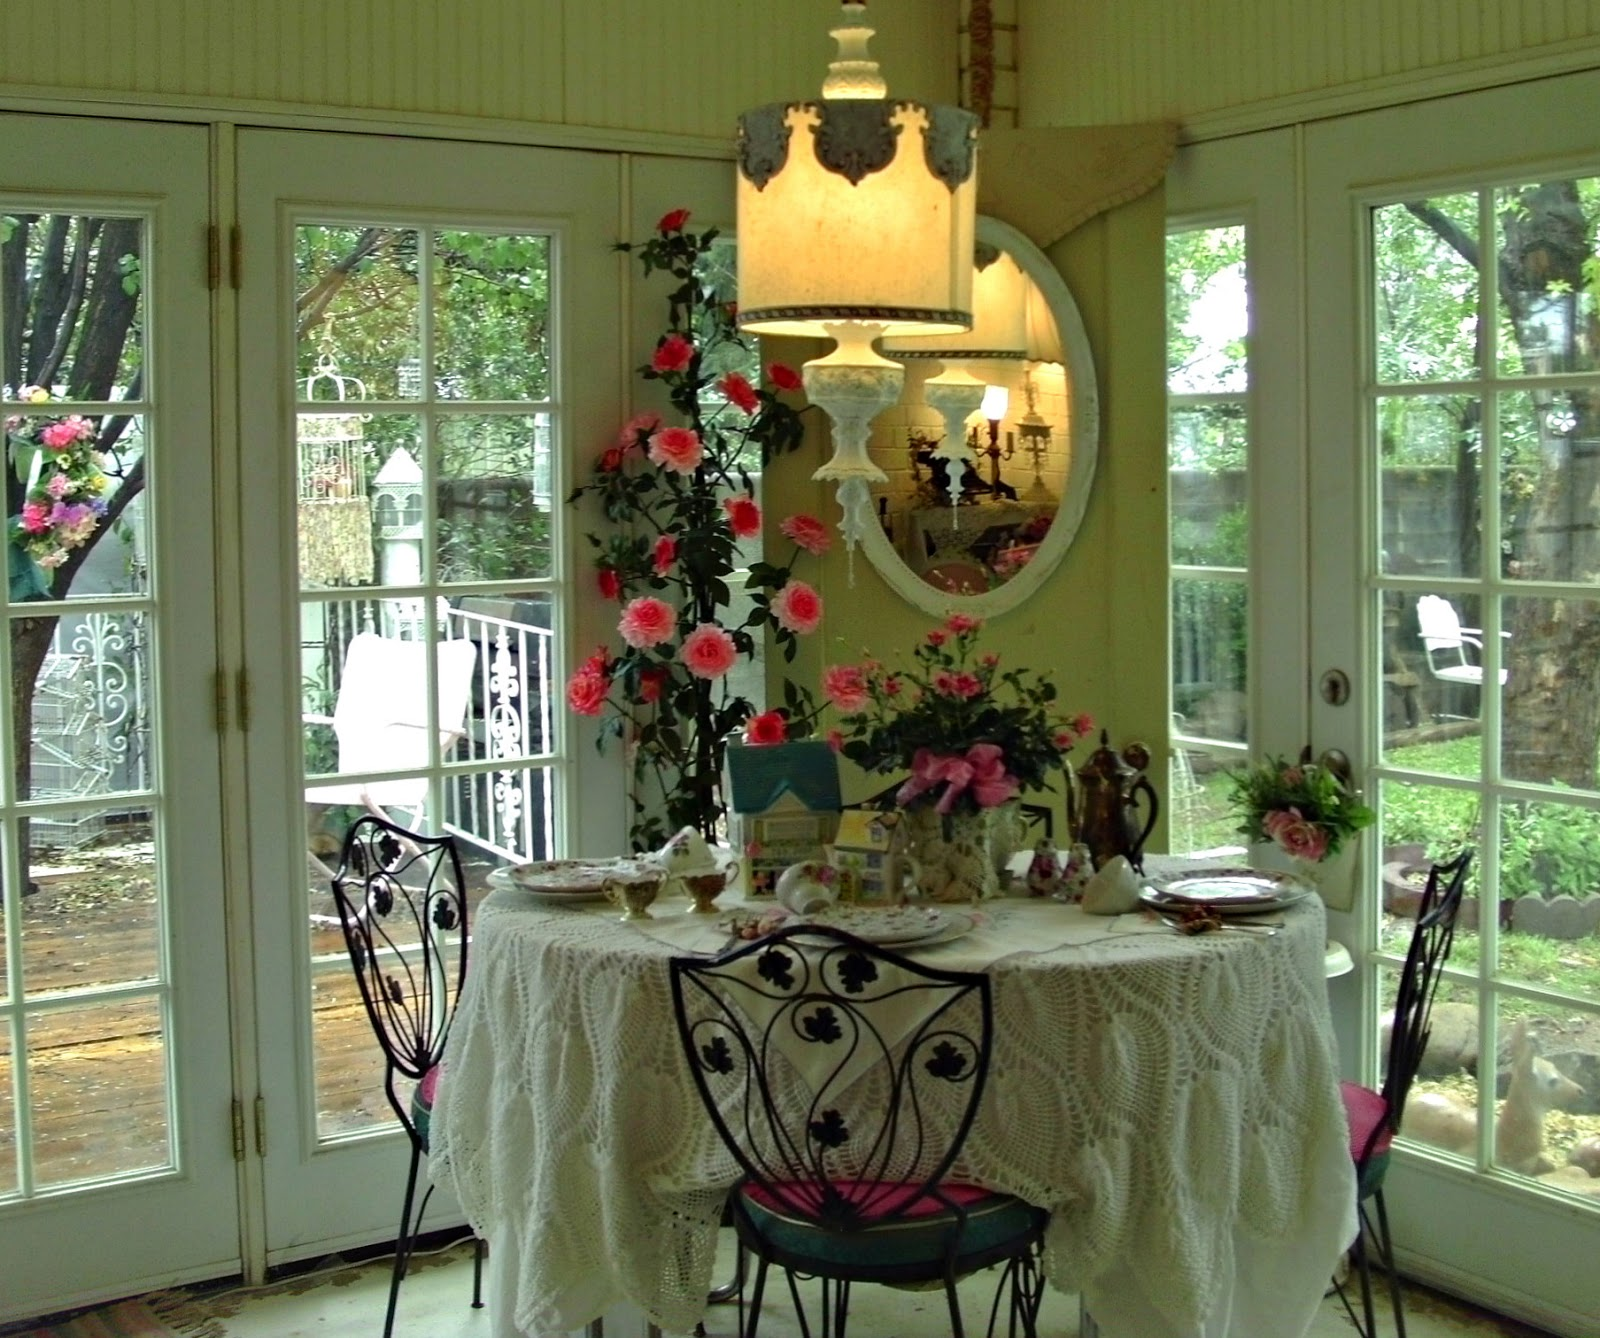 Frugal Home Decorating: Penny's Vintage Home: Thrifty Decorating